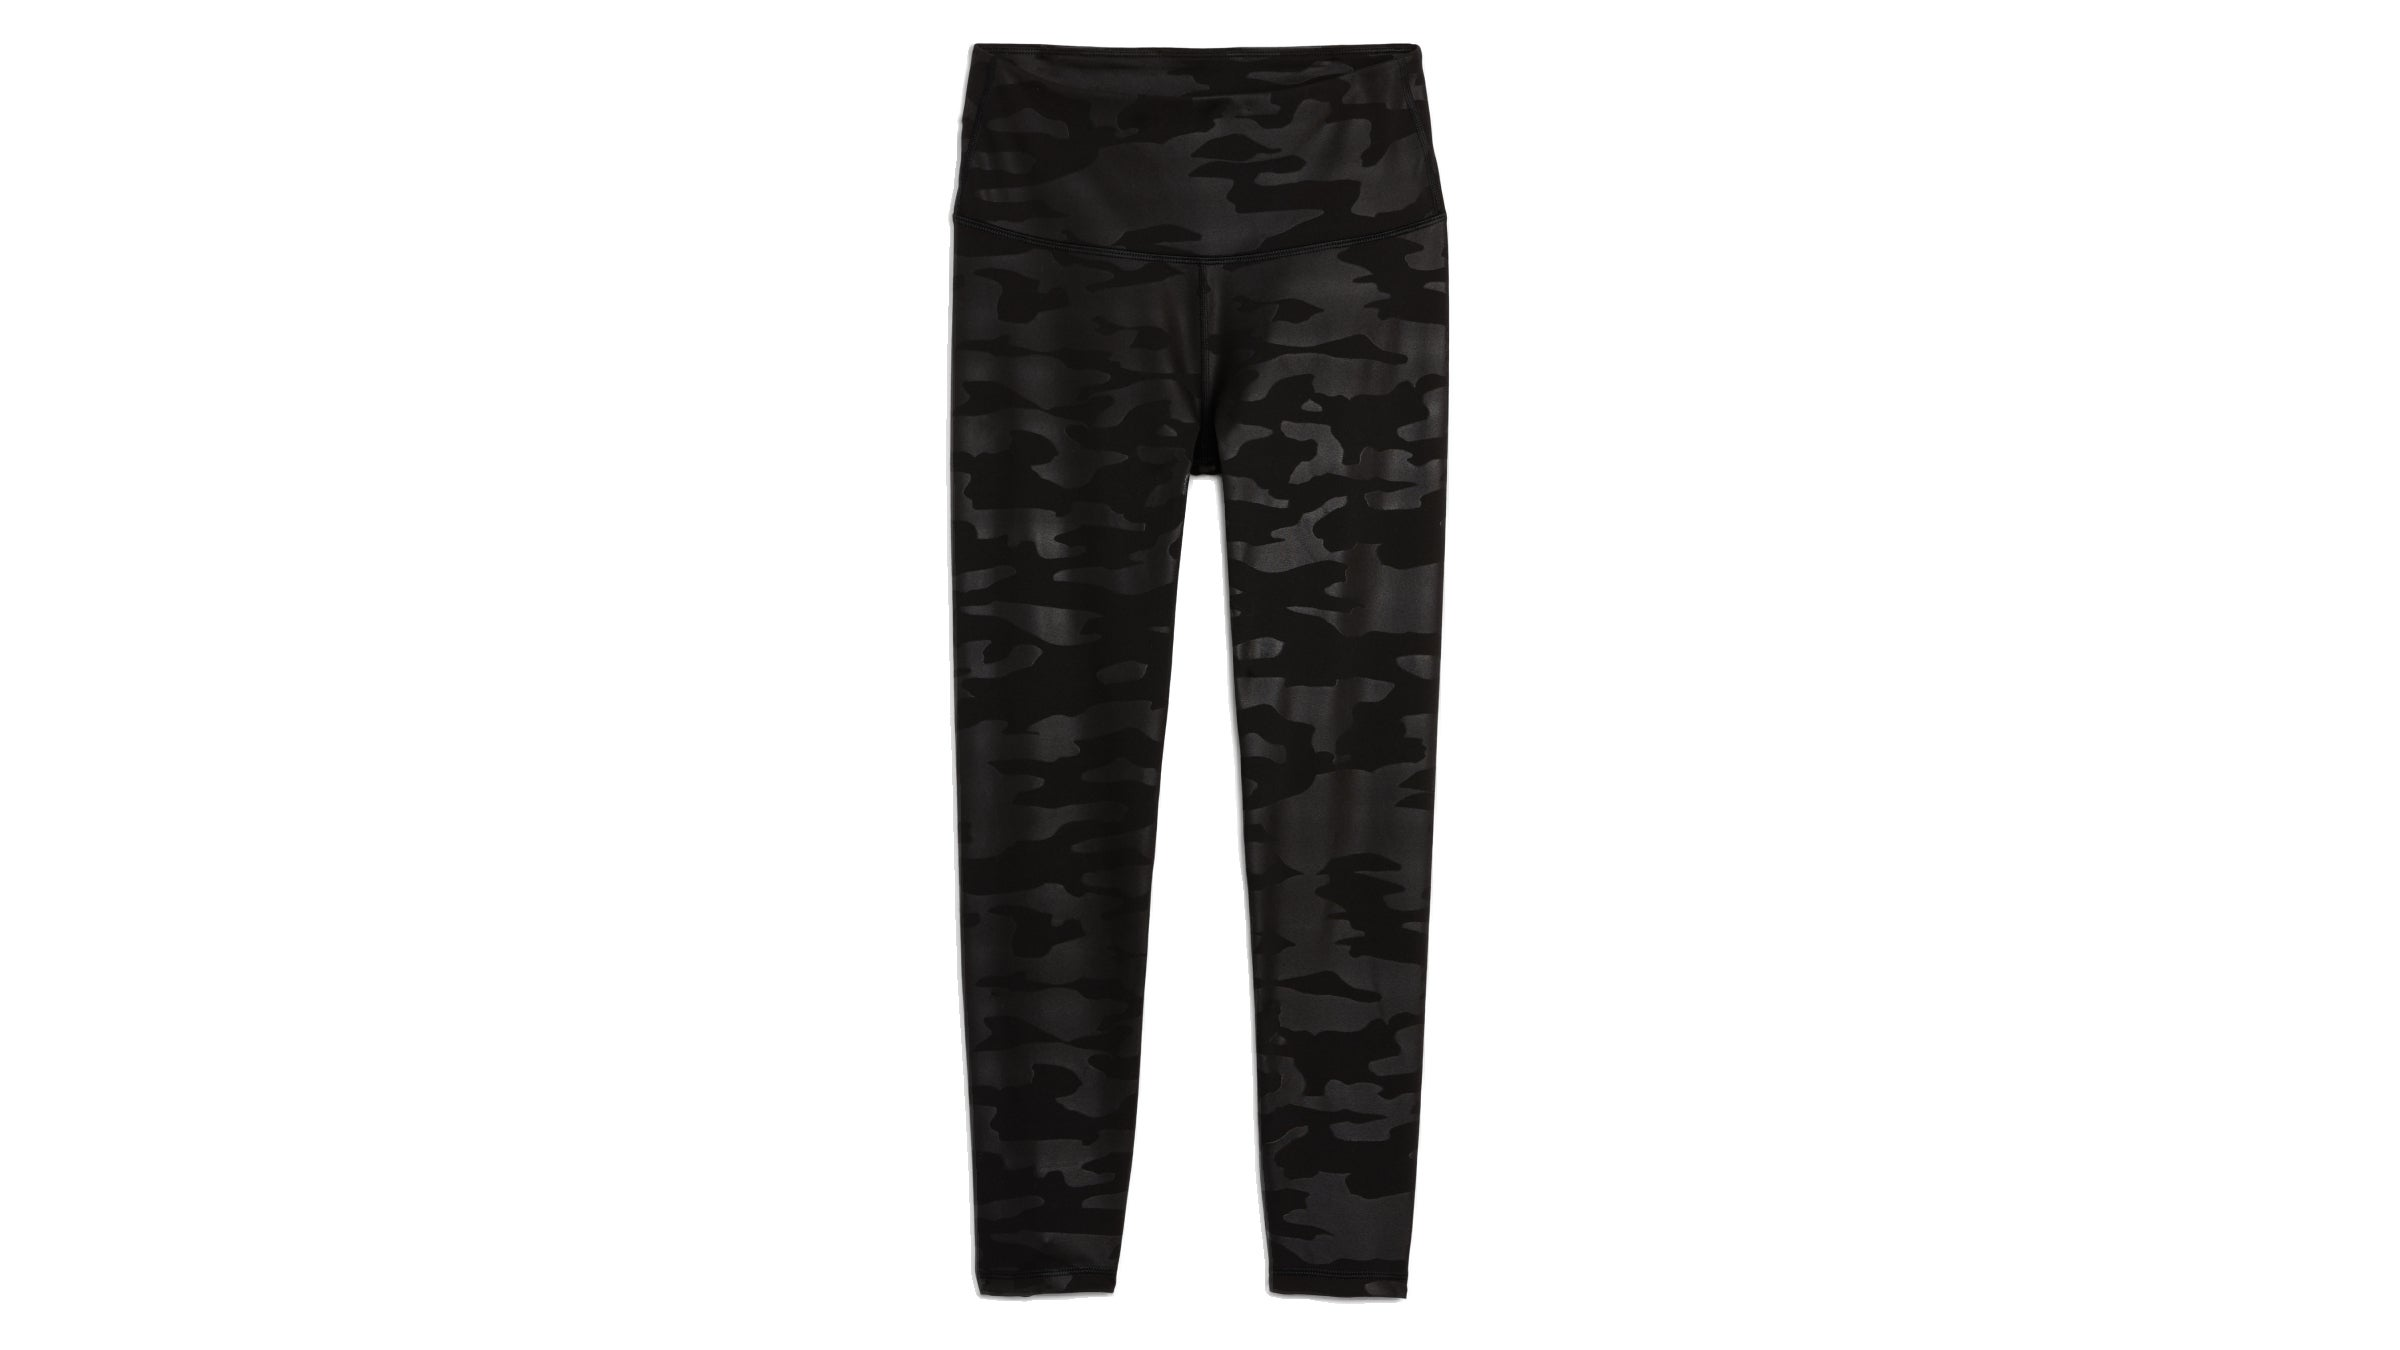 Old Navy black camo leggings